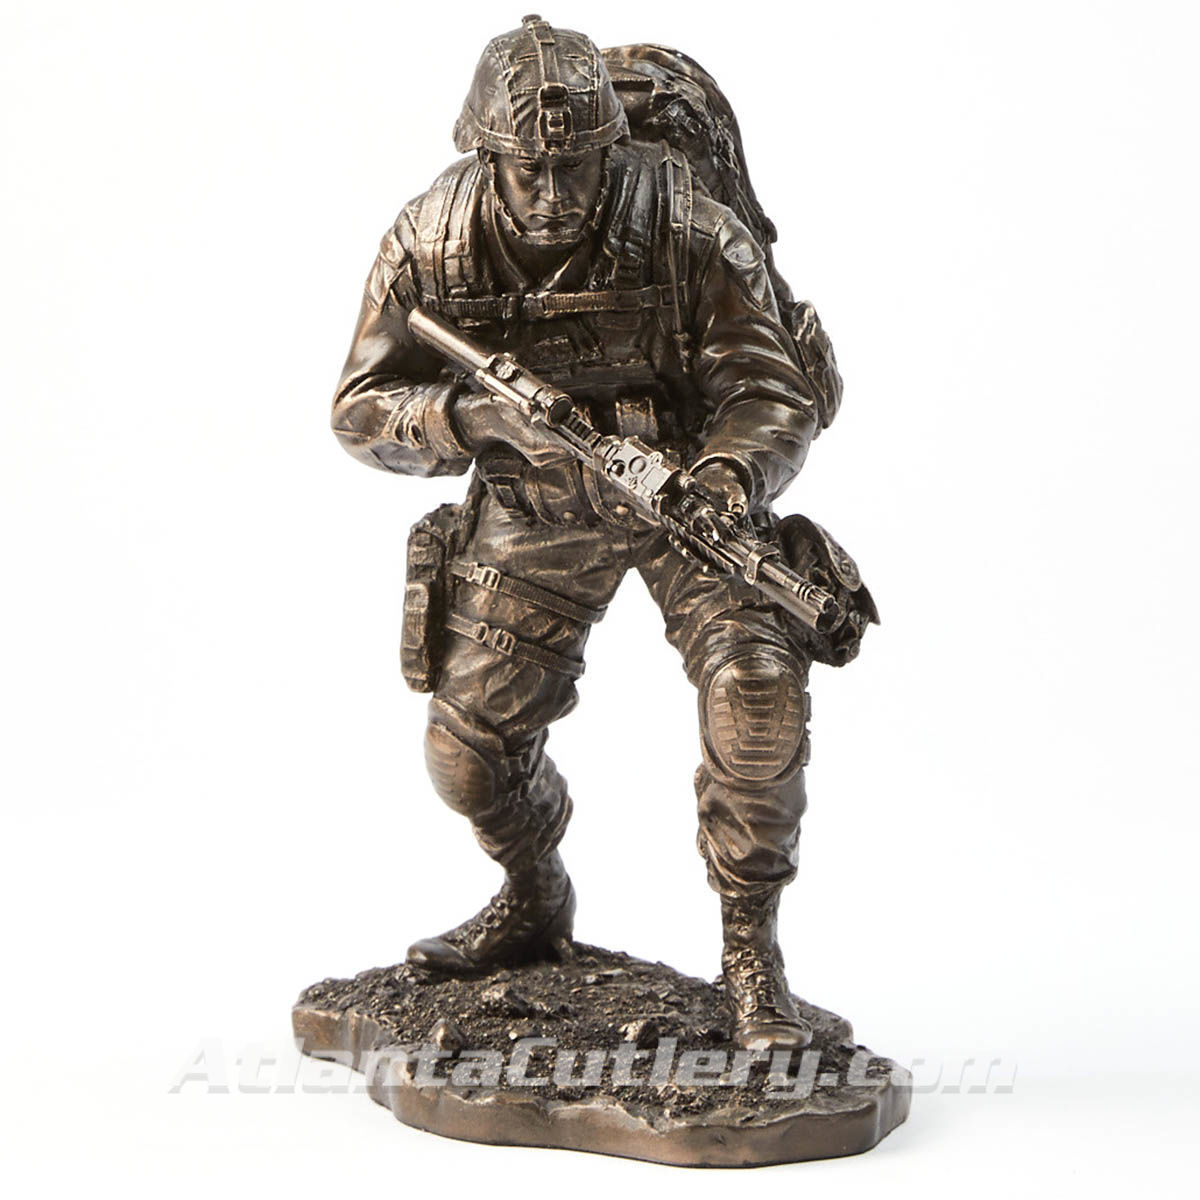 Cold-cast resin modern soldier statue has an antique bronze finish with accurately sculpted clothing, gear, and weapons